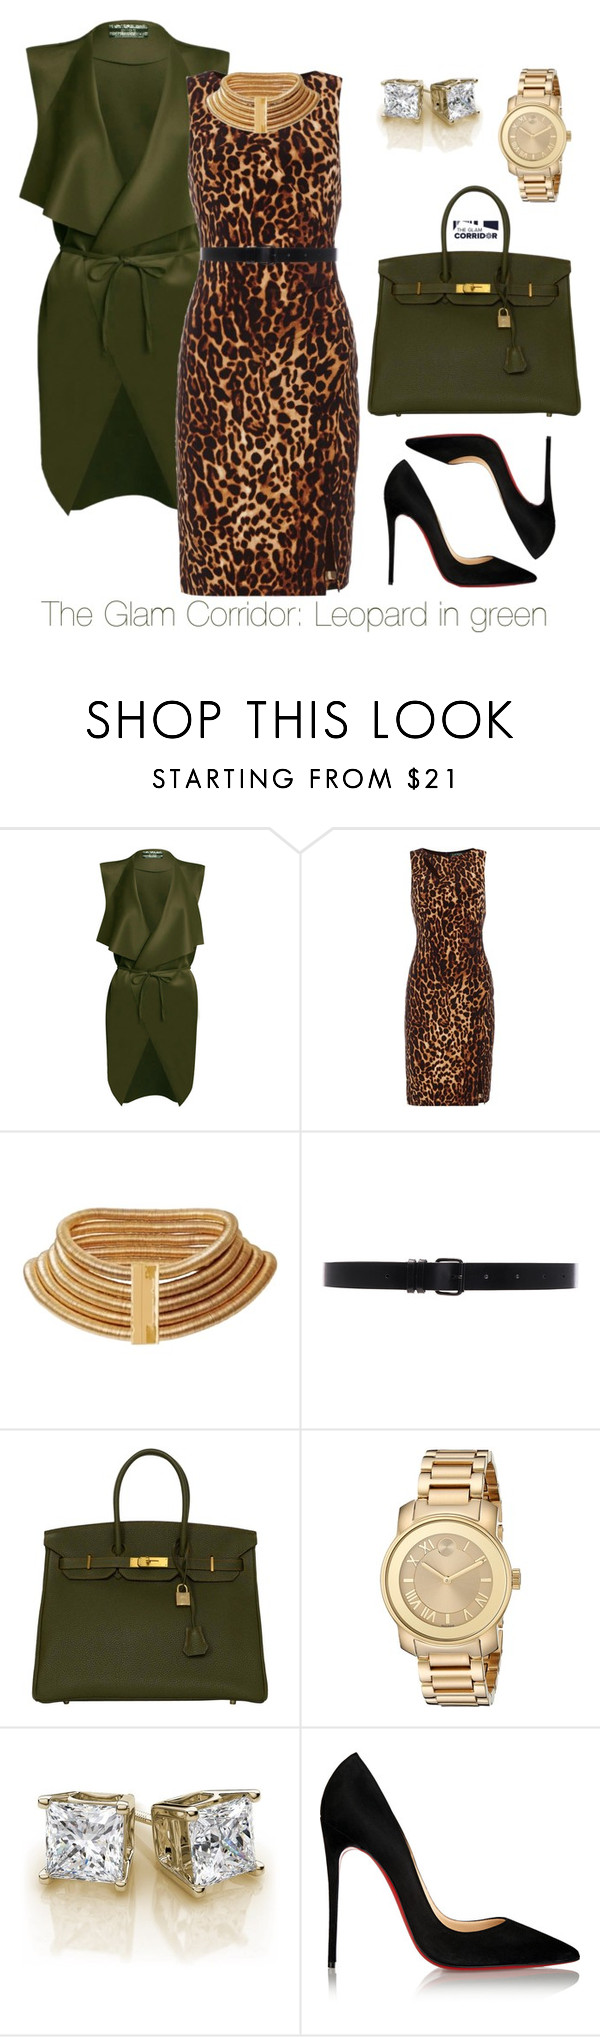 """""""Leopard in green"""" by theglamcorridor ❤ liked on Polyvore featuring Lauren Ralph Lauren, Balmain, Ann Demeulemeester, Hermès, Movado and Christian Louboutin"""